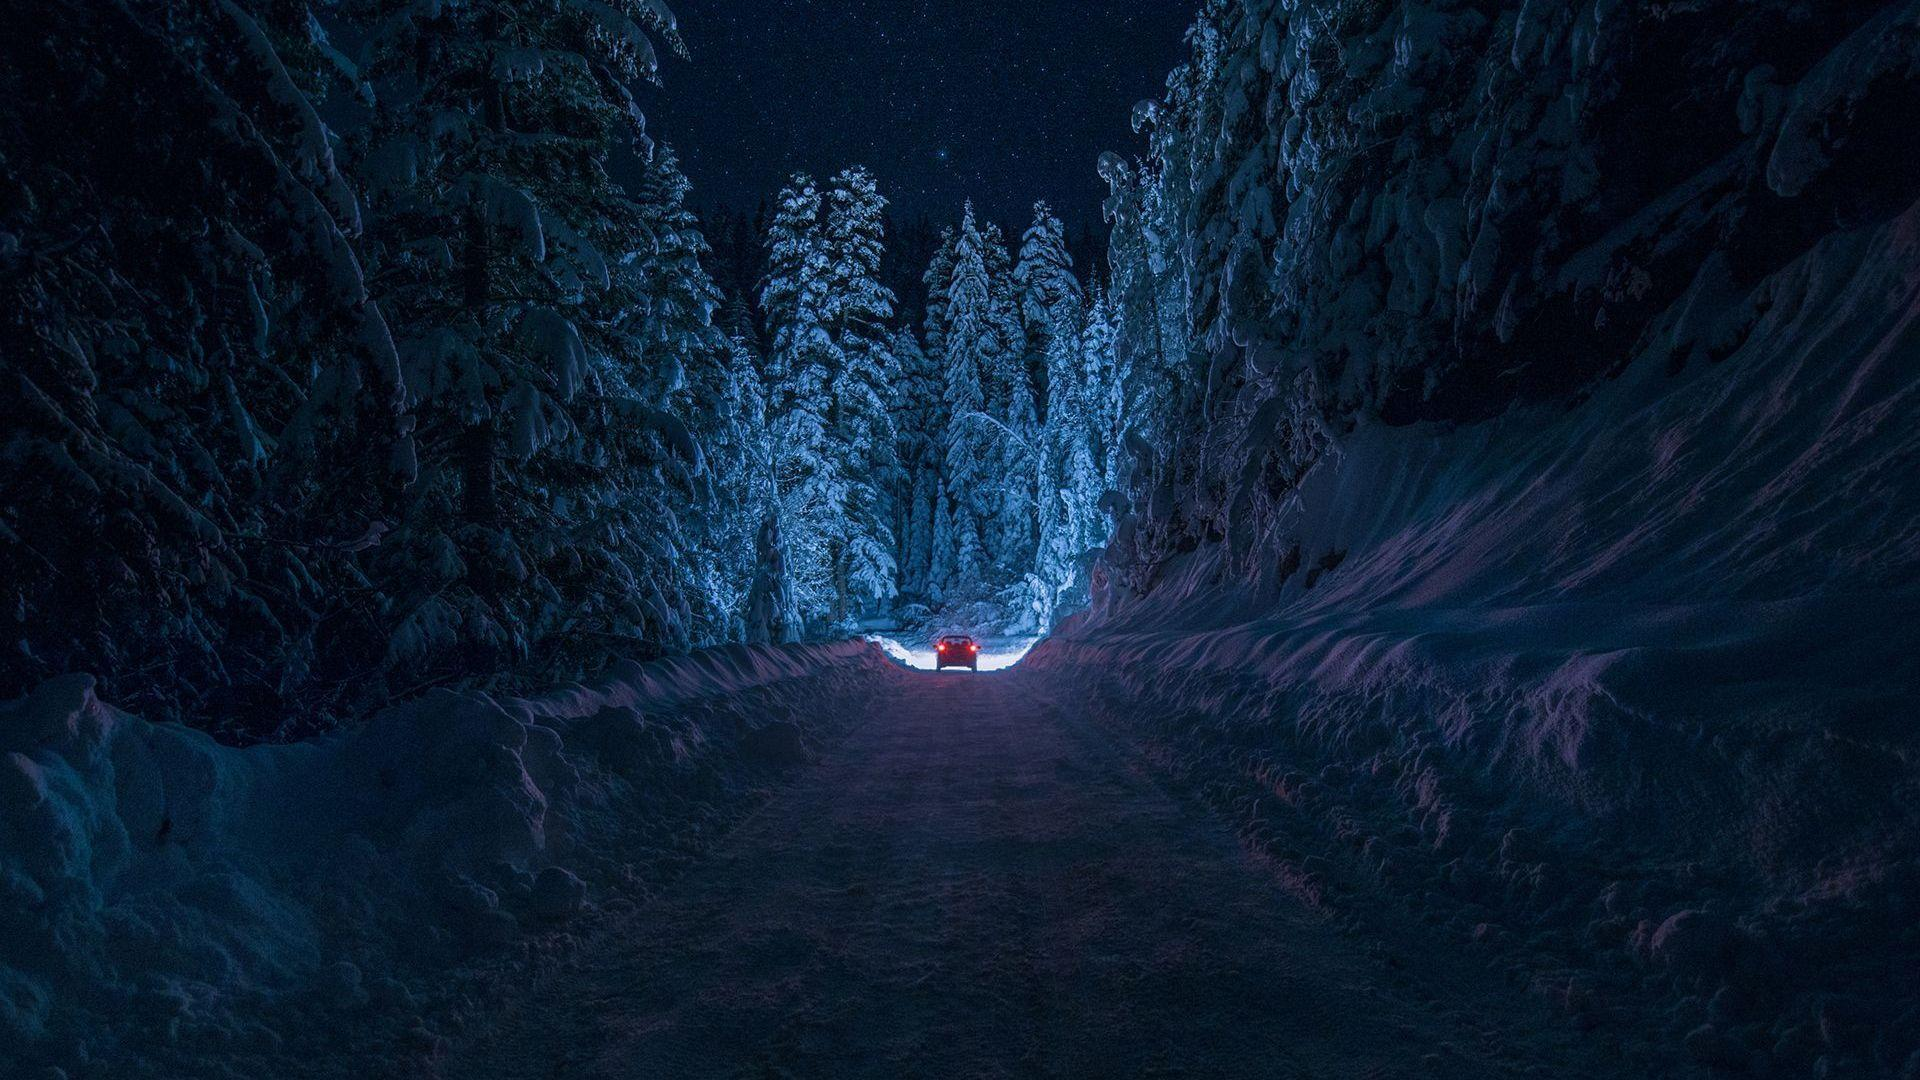 Driving Through The Snowy Forest HD Aesthetic Wallpapers Free